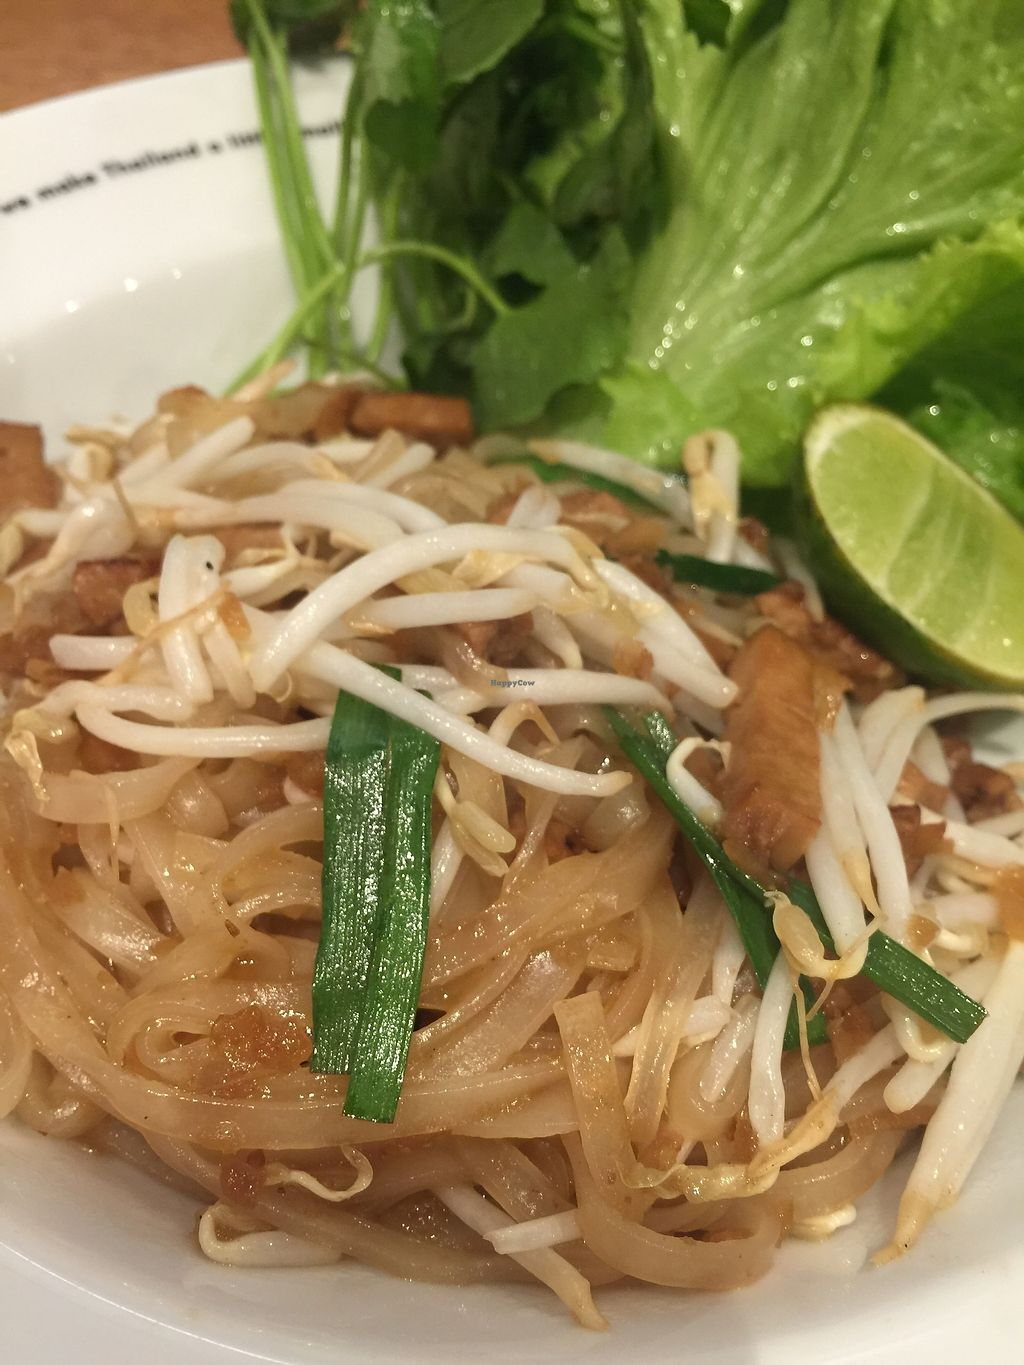 """Photo of Khun Churn - Eathai  by <a href=""""/members/profile/JaqVeganWriter"""">JaqVeganWriter</a> <br/>Pad Thai - omit egg <br/> February 16, 2018  - <a href='/contact/abuse/image/52986/359847'>Report</a>"""